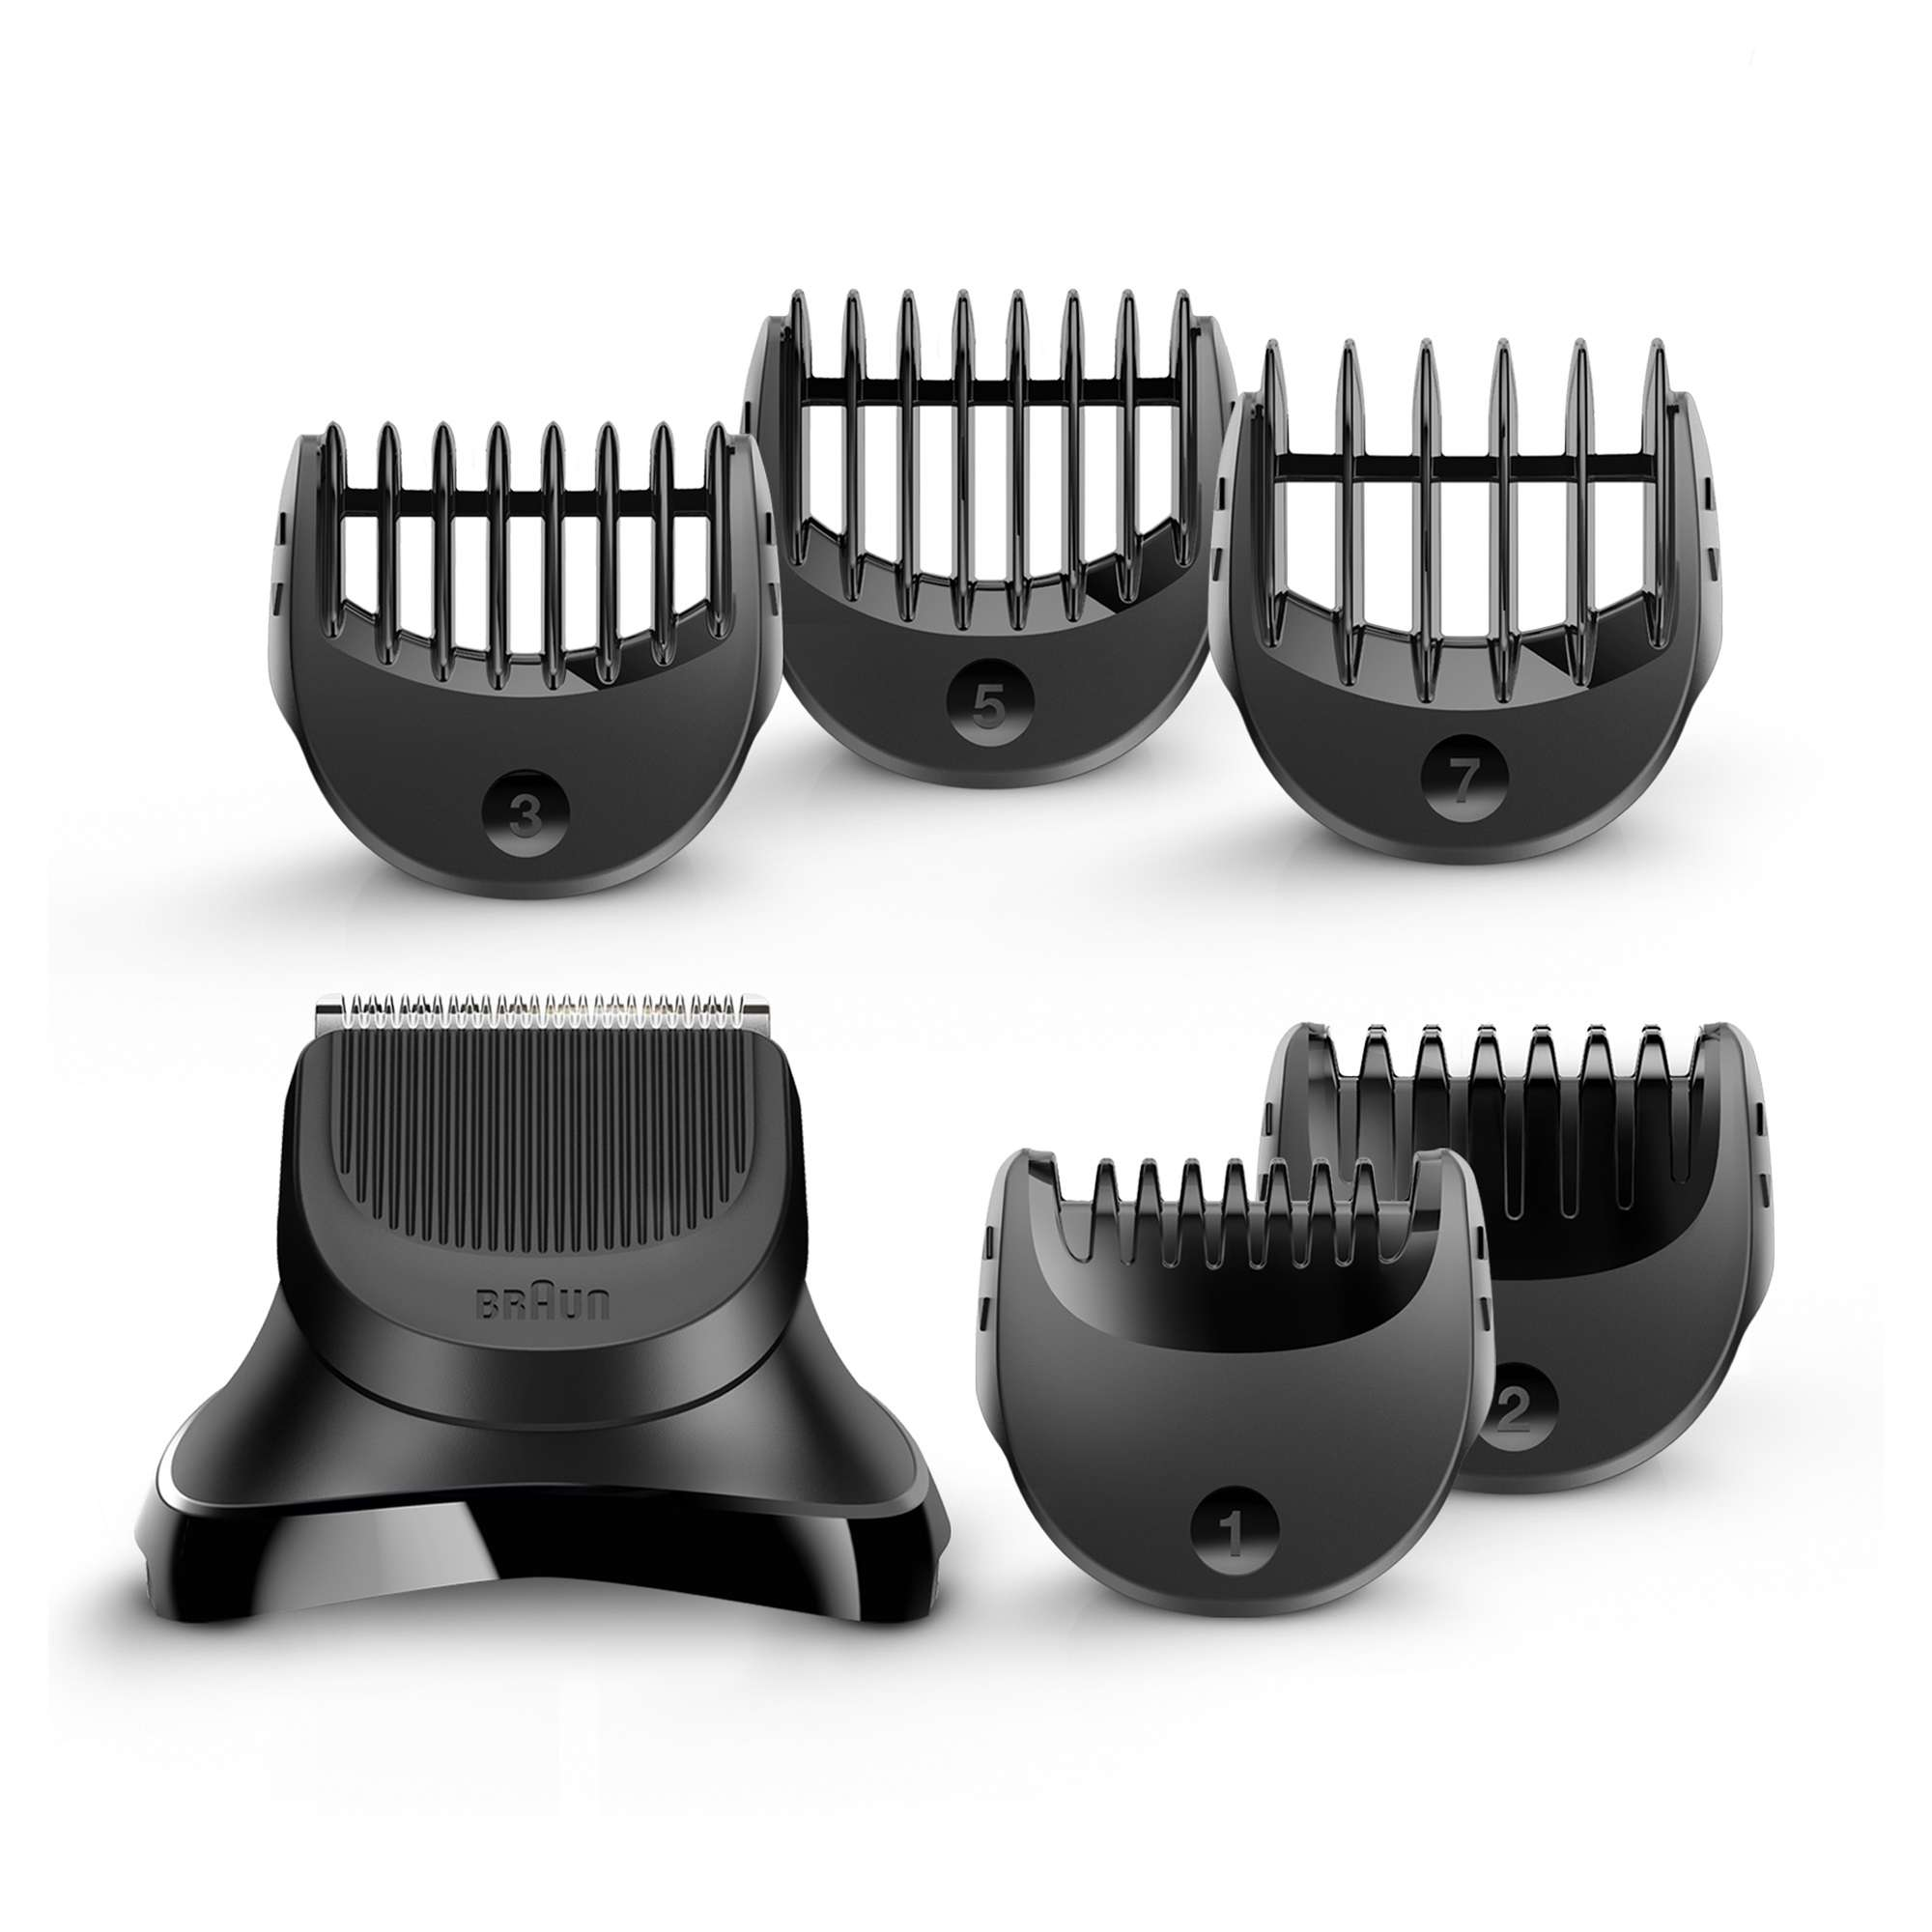 Braun Beard Trimmer Head +5combs BT32 - Compatible with Series 3 Shavers